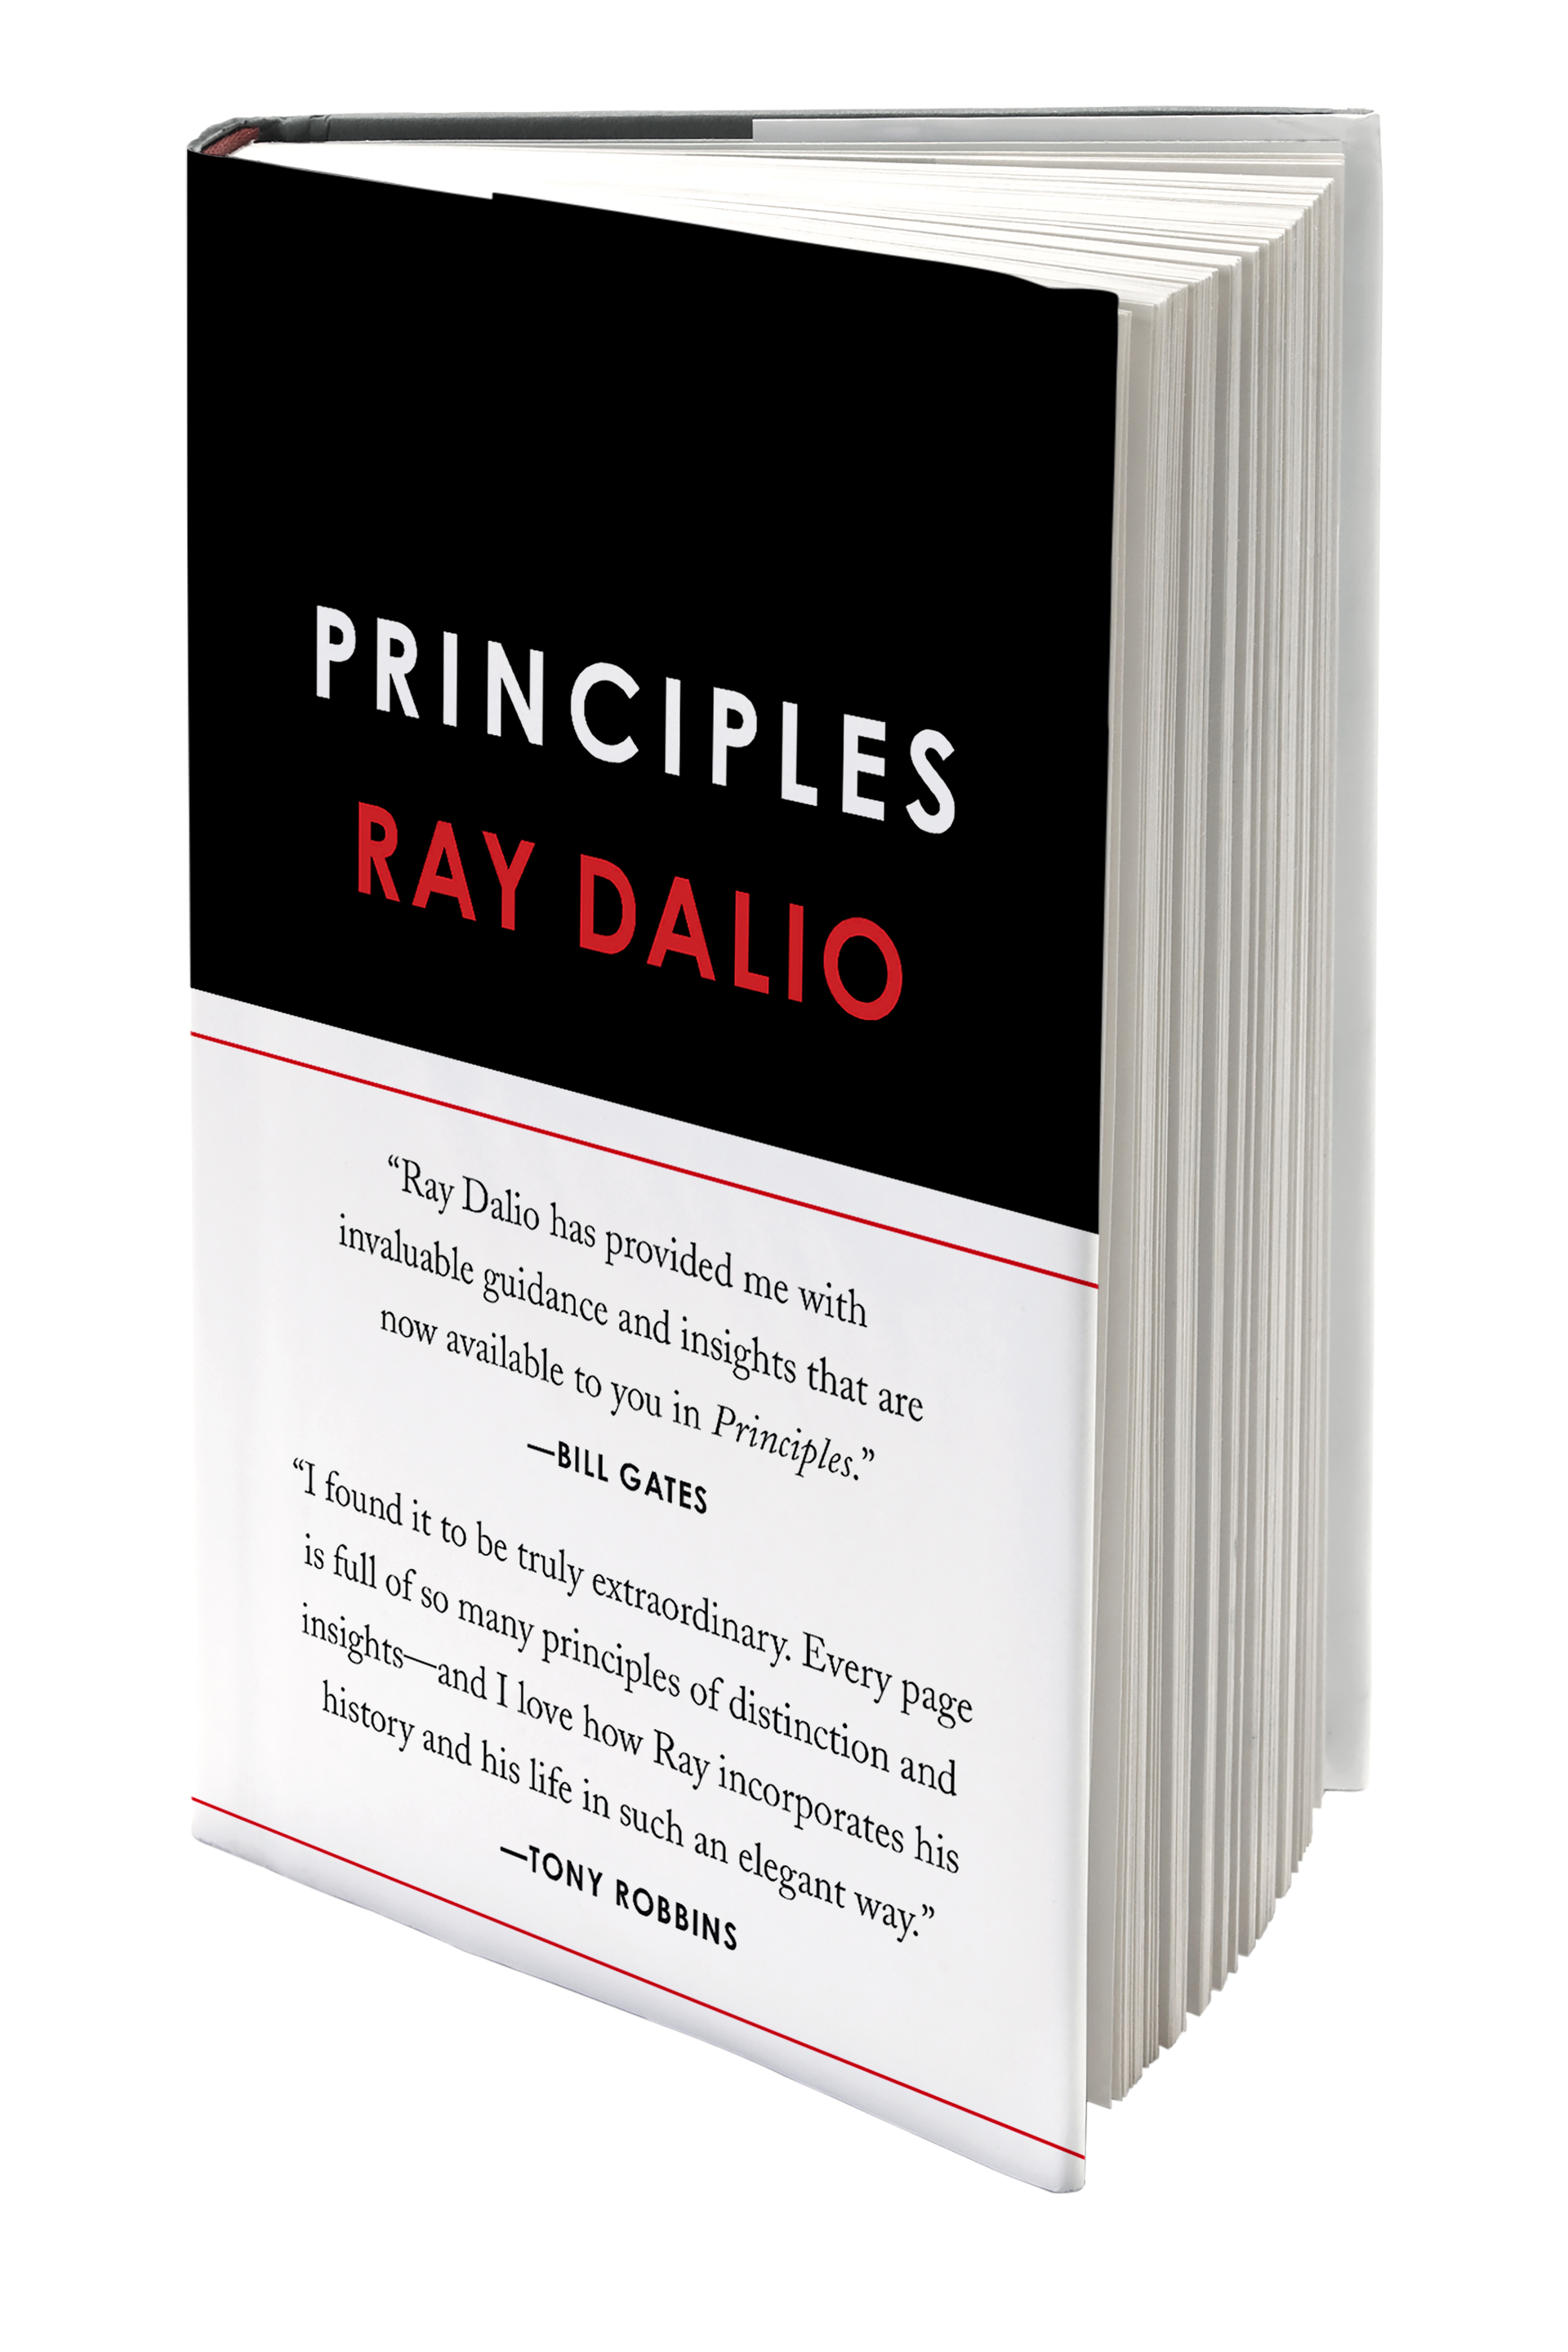 Principles, by Ray Dalio